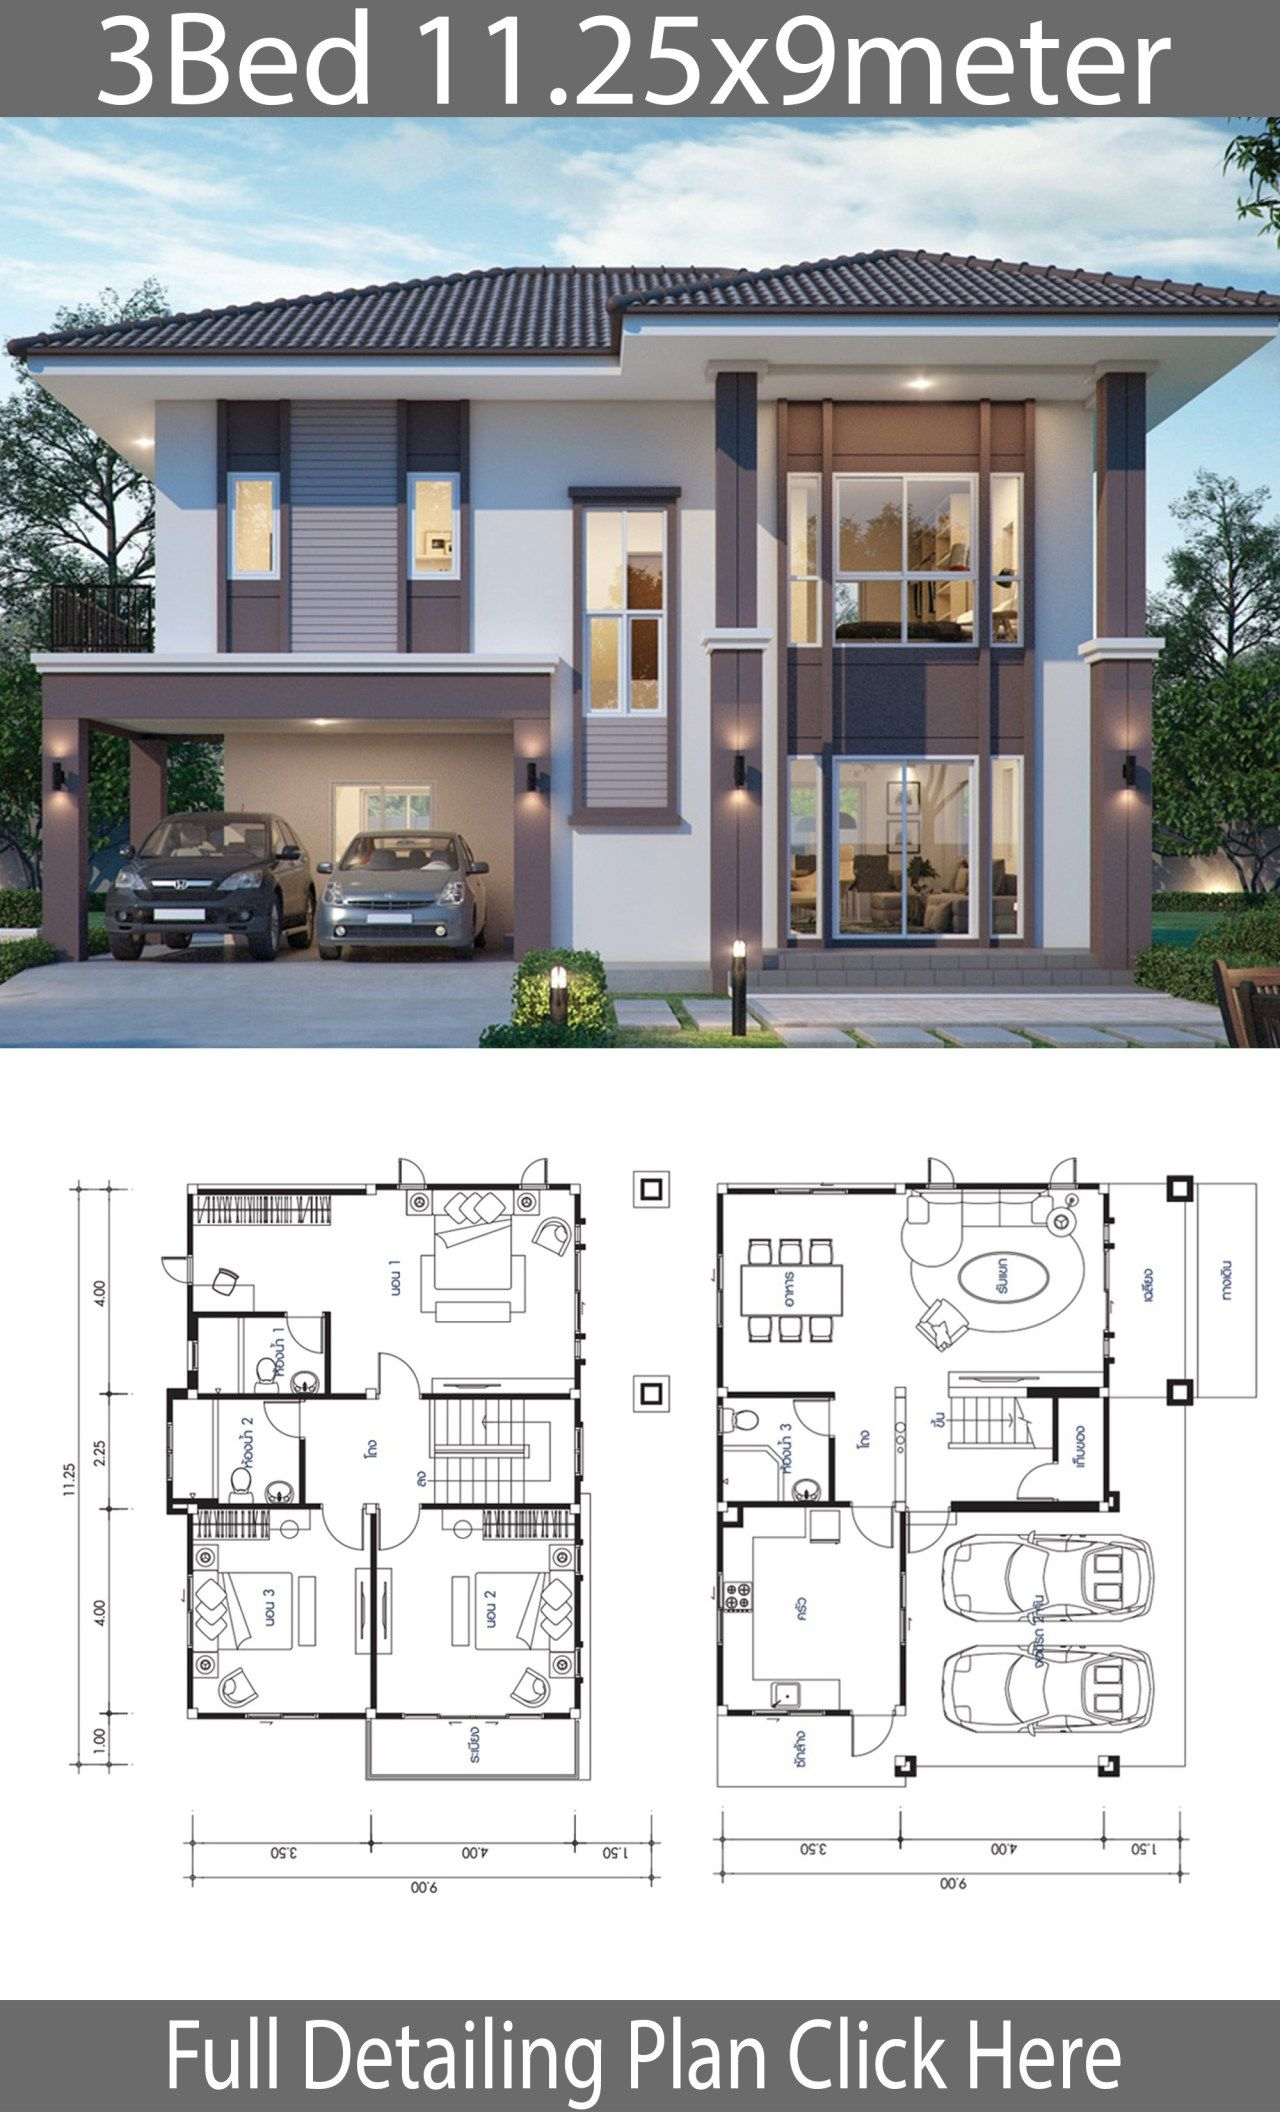 House Design Plan 11 25x9m With 3 Bedrooms Architectural House